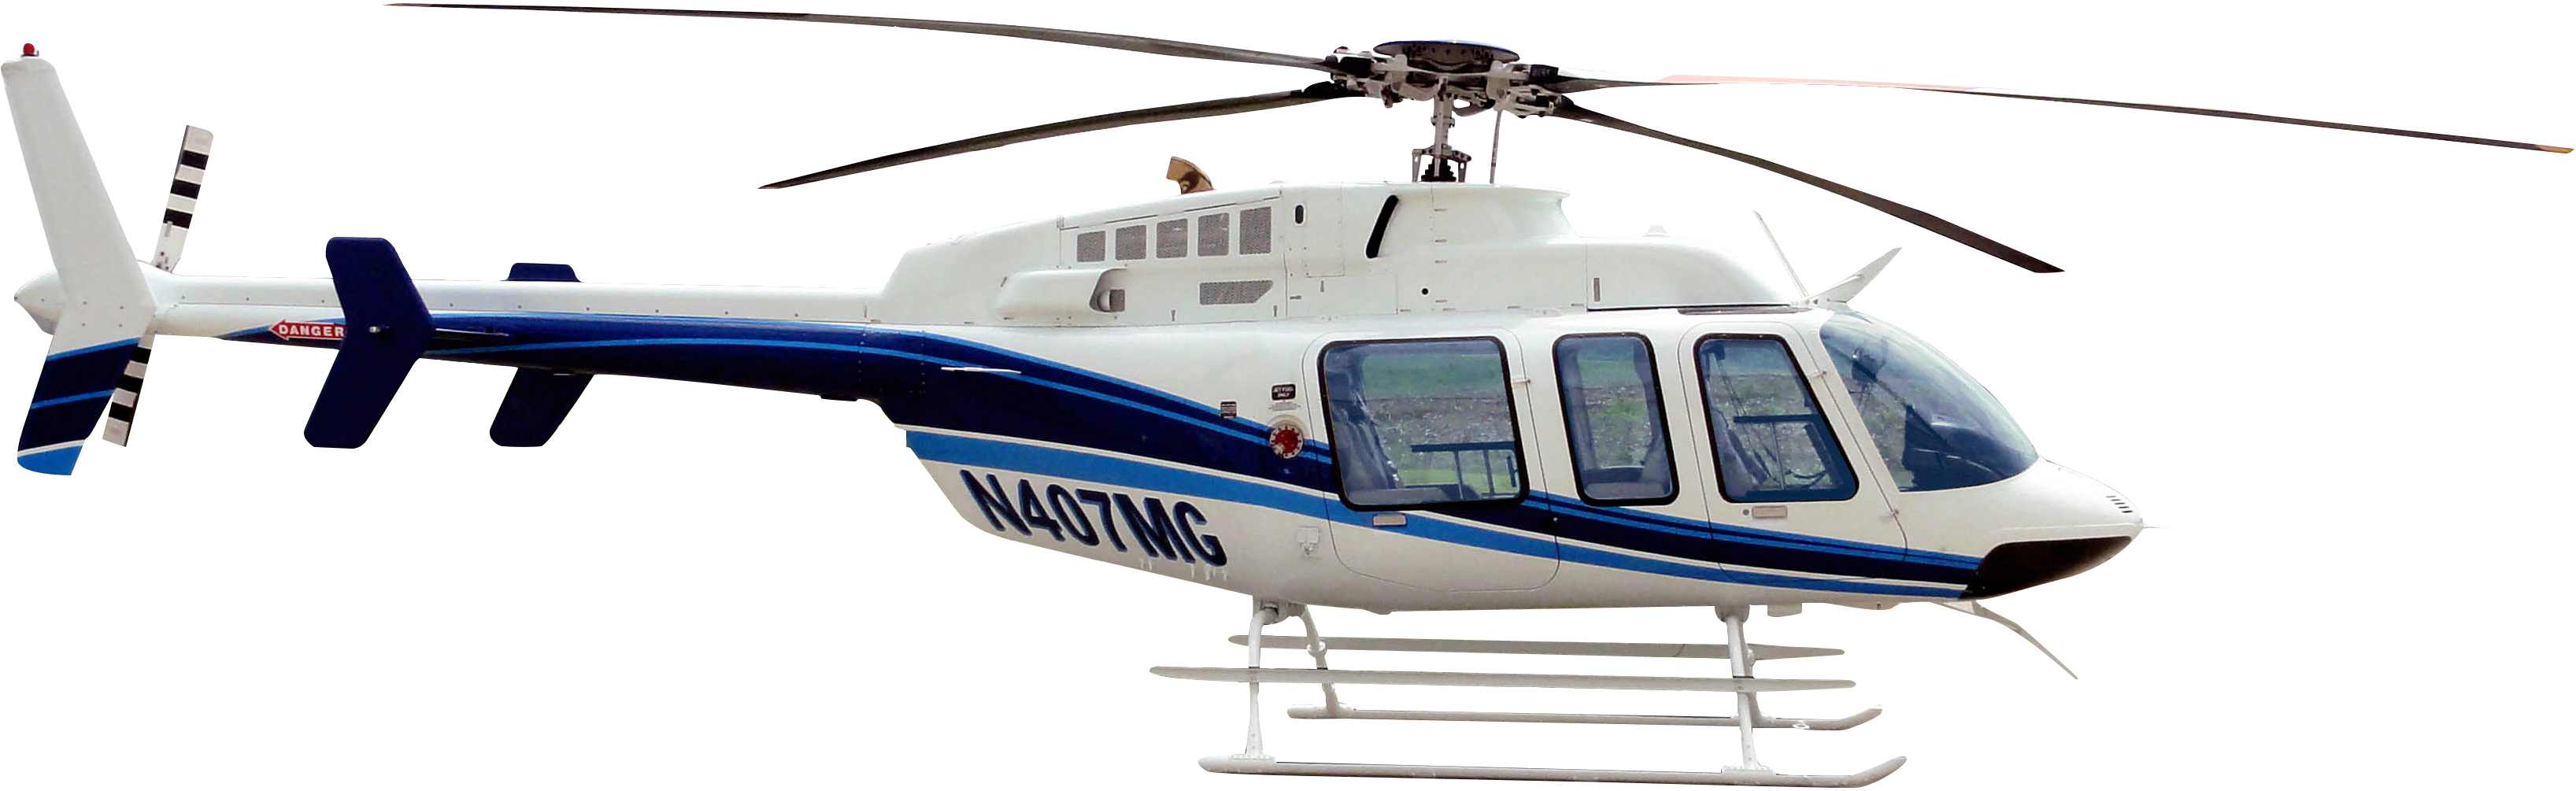 Helicopter png images. Free download mart